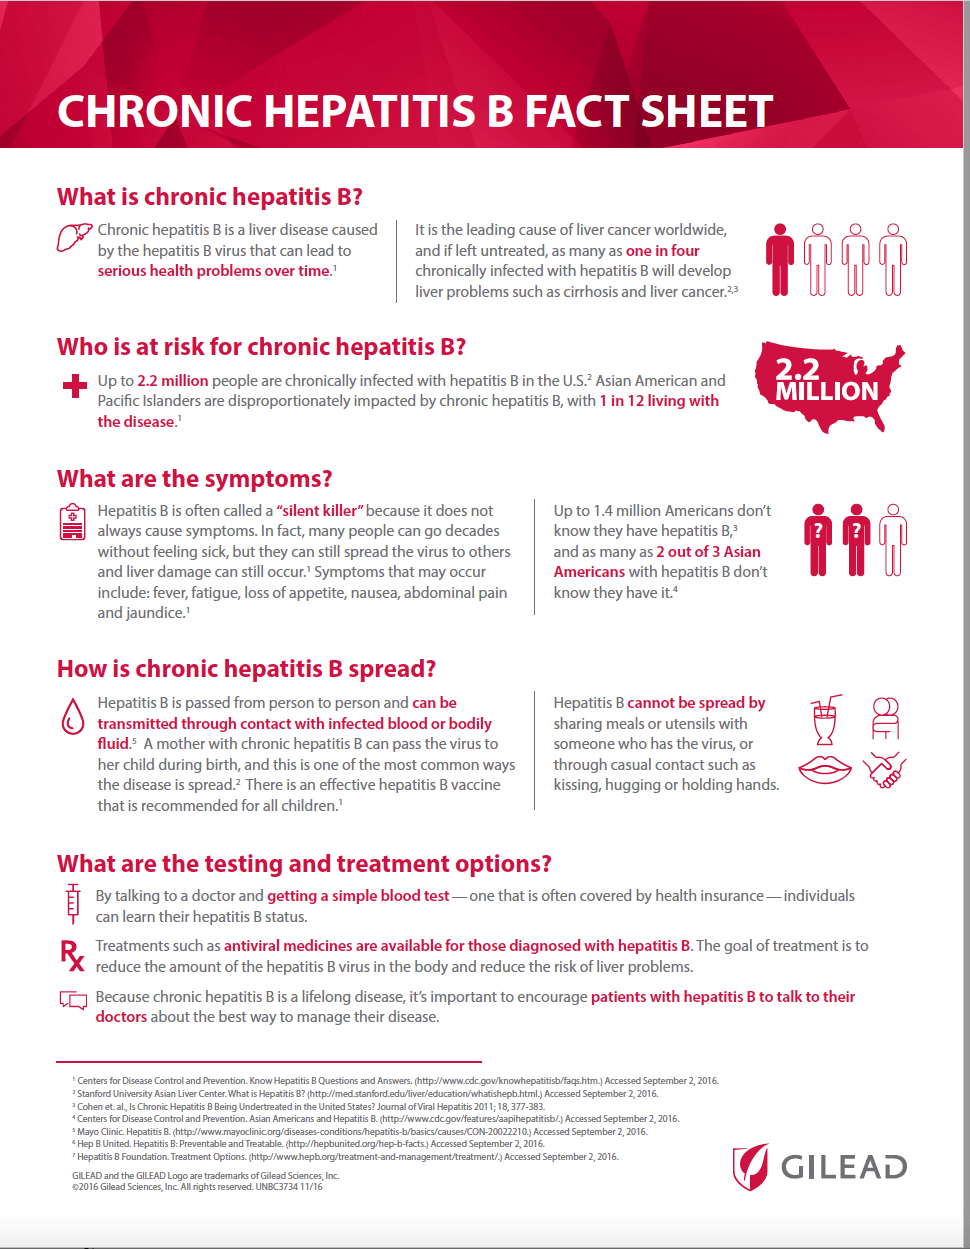 CHRONIC HEPATITIS B FACT SHEET